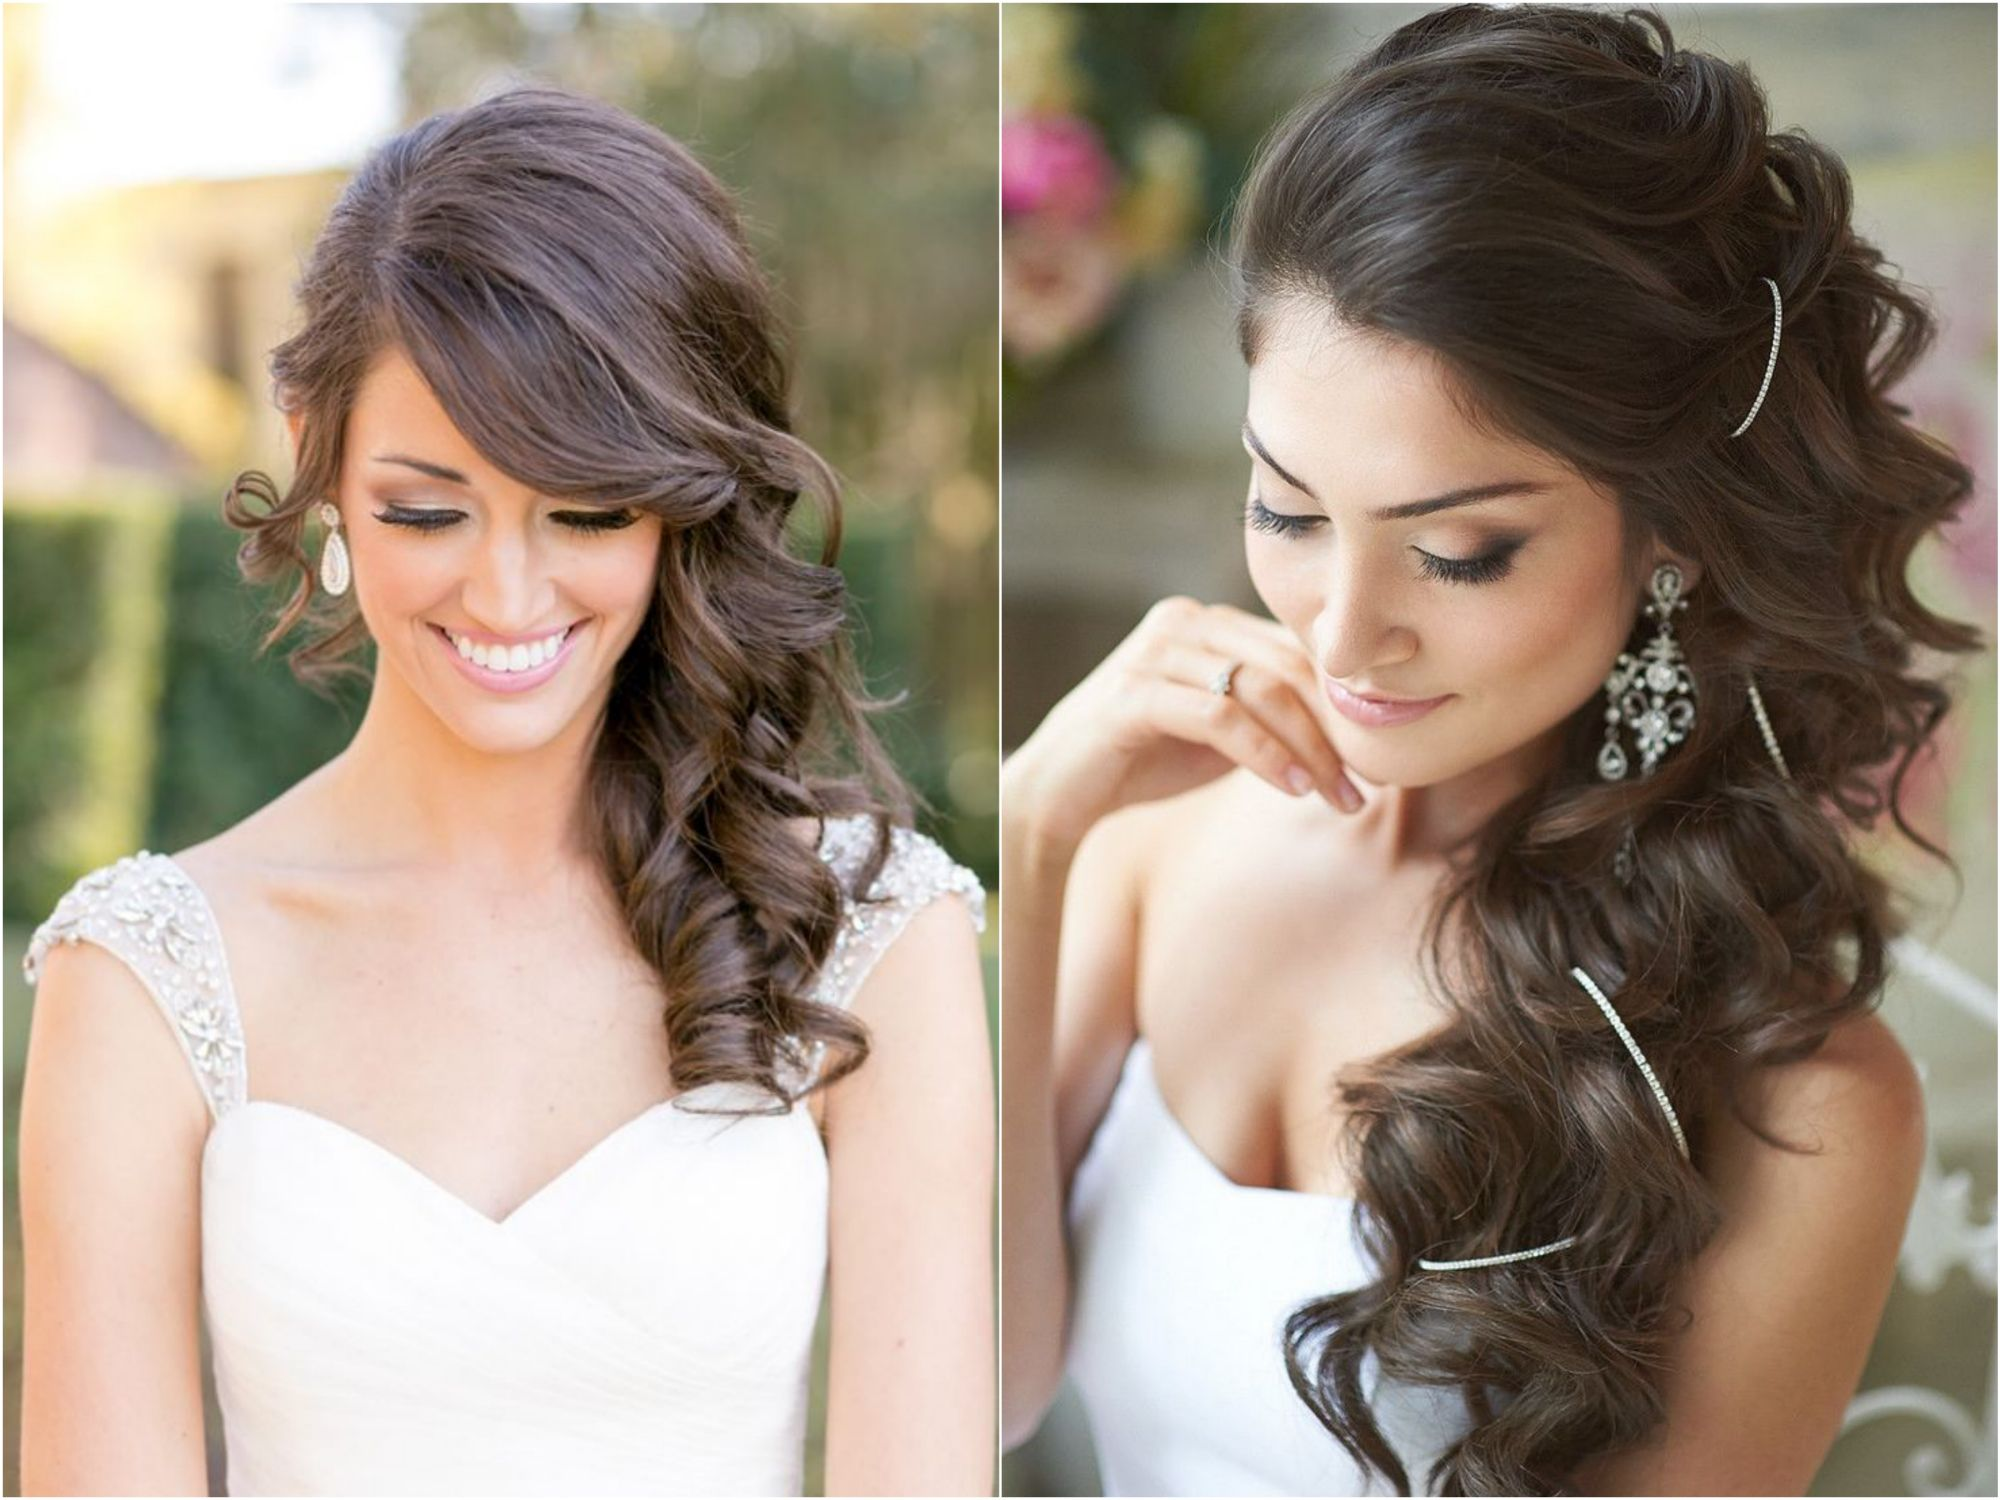 penteados de lado para noivas hair style wedding and makeup